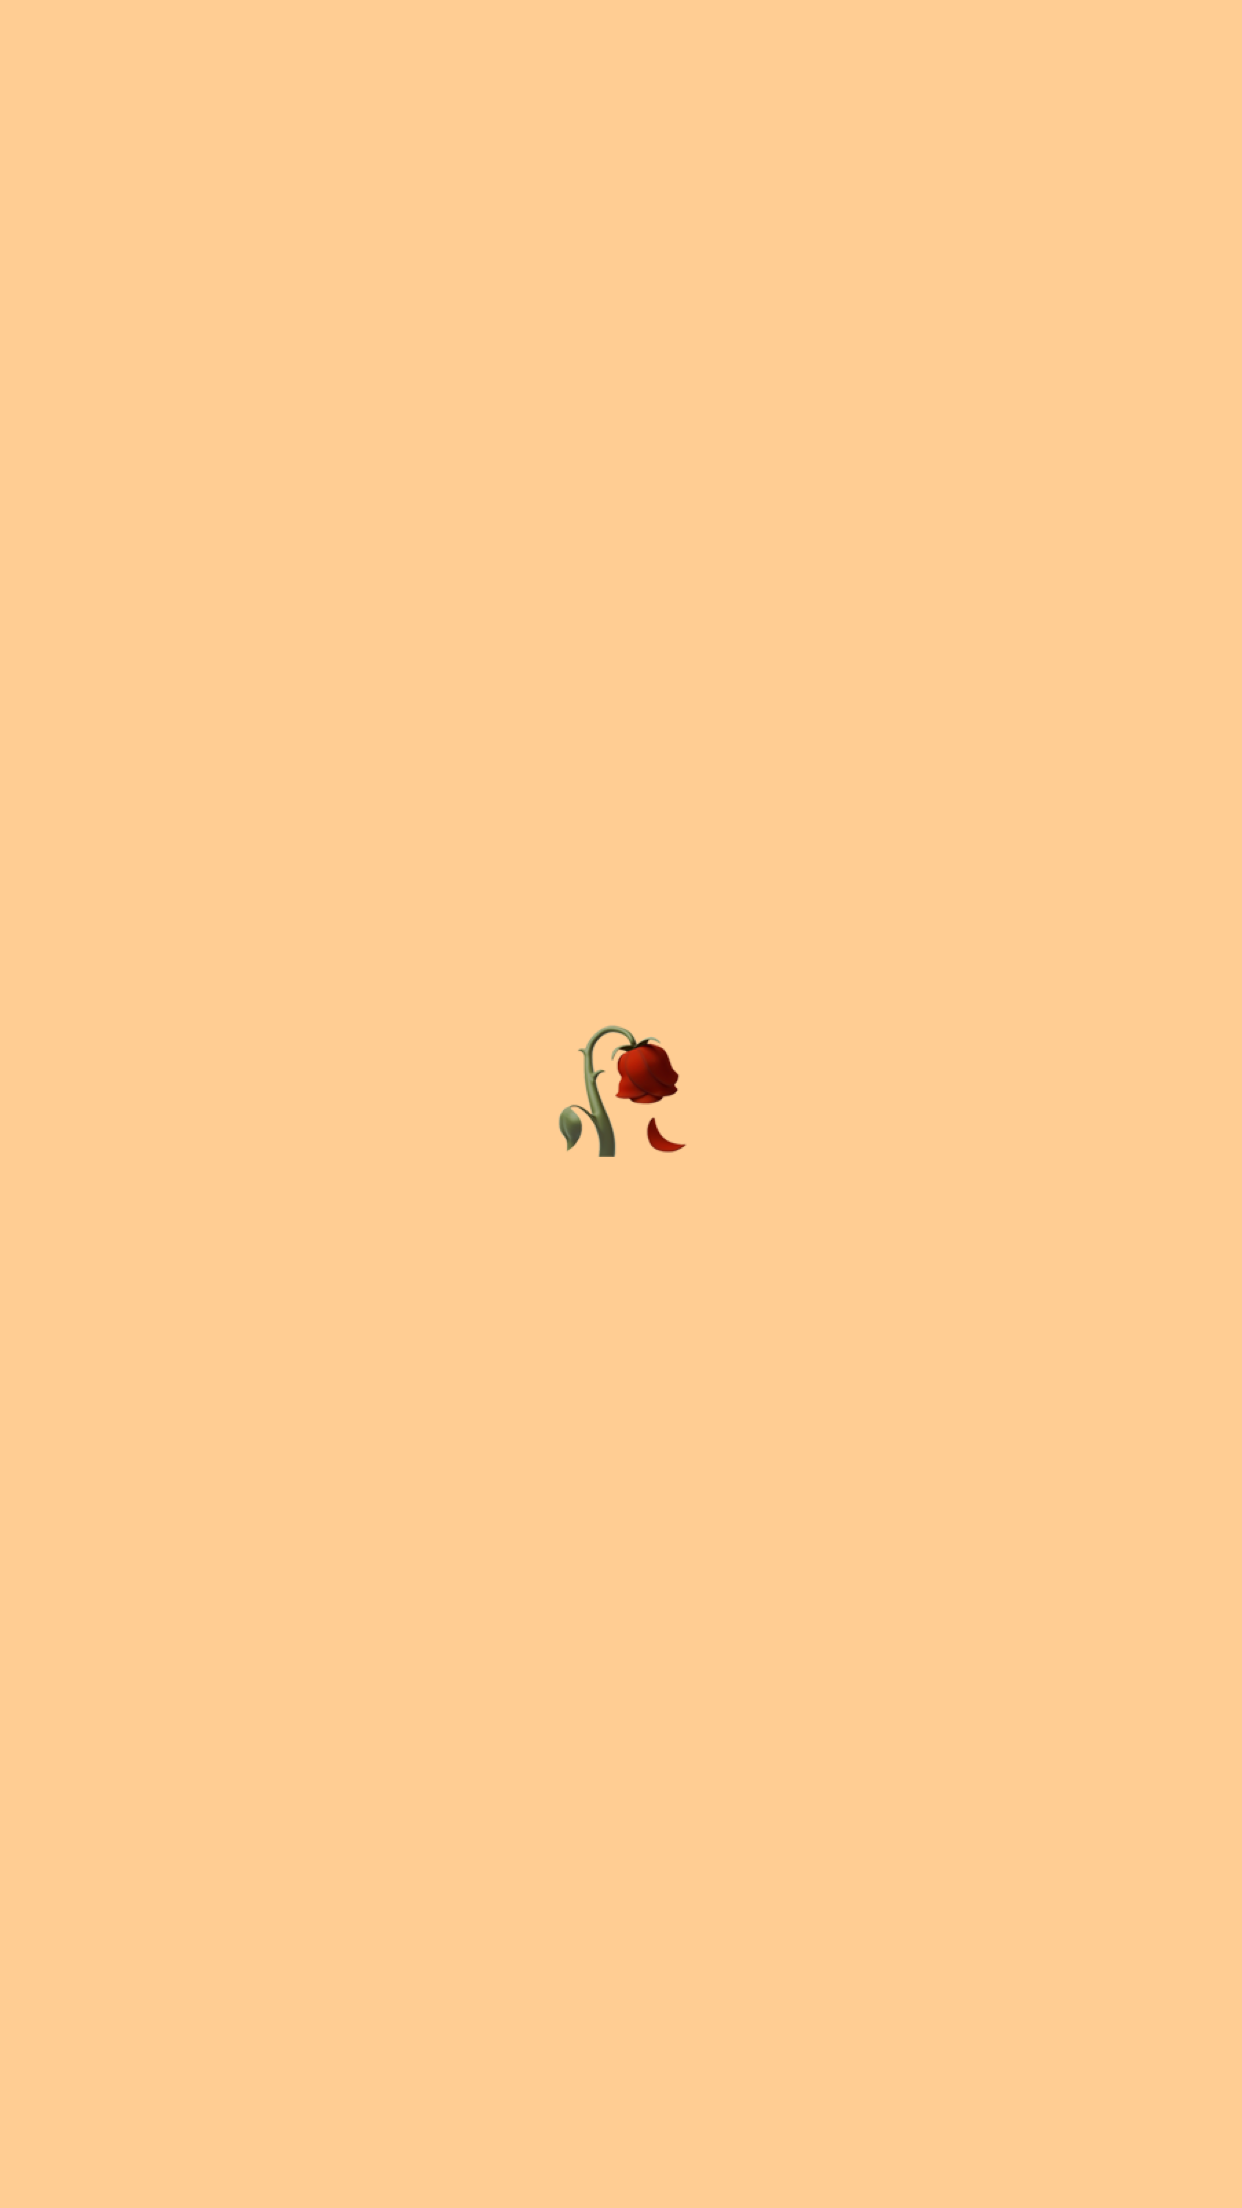 Sad Wallpaper For Iphone Posted By Ethan Peltier